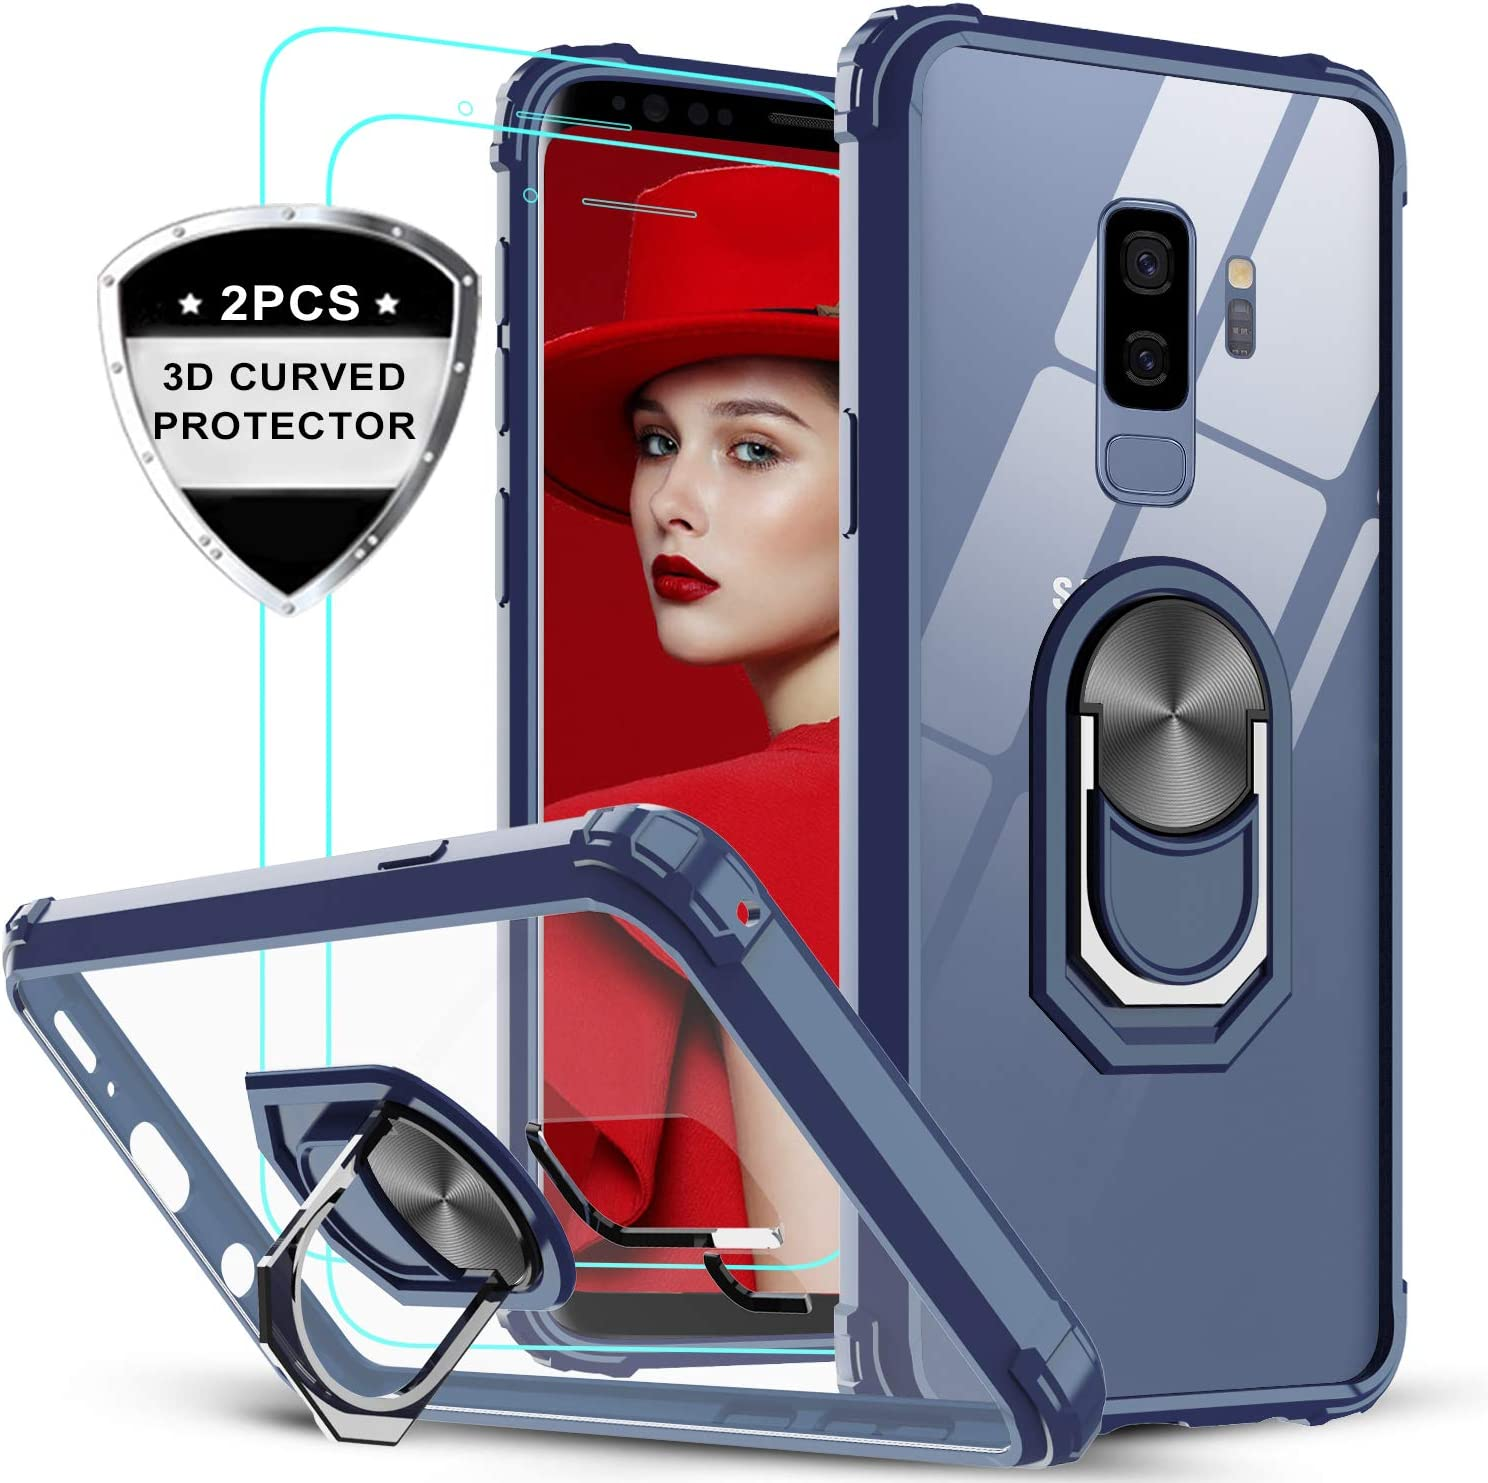 LeYi Samsung Galaxy S9 Plus Case with 3D Curved Screen Protector [2 Pack], [Military Grade] Clear Crystal Protective Phone Cover Case with Magnetic Ring Car Mount Kickstand for Samsung S9 Plus, Blue